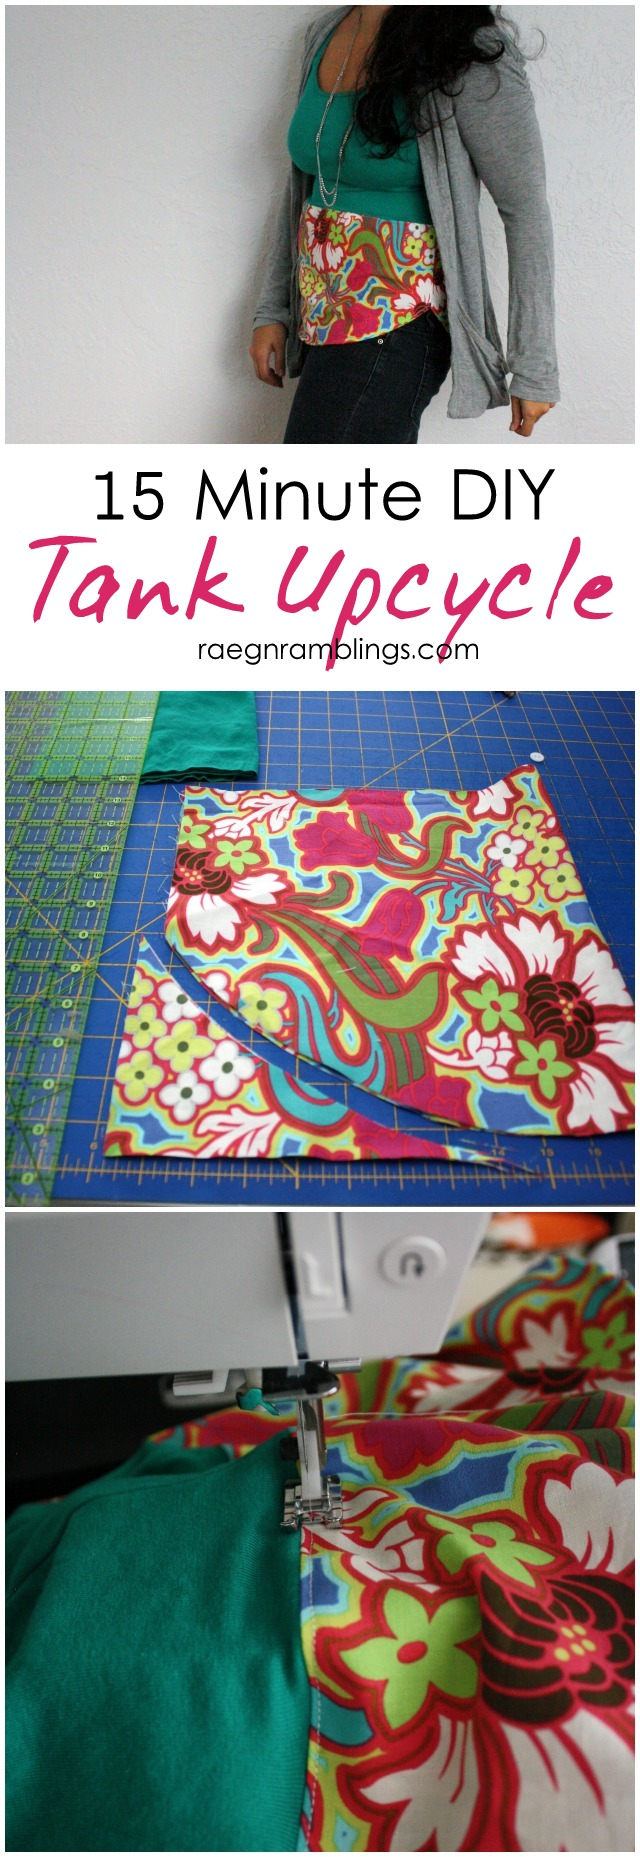 Just 1/4 yard fabric to turn a boring tank into a stylish top - Rae Gun Ramblings